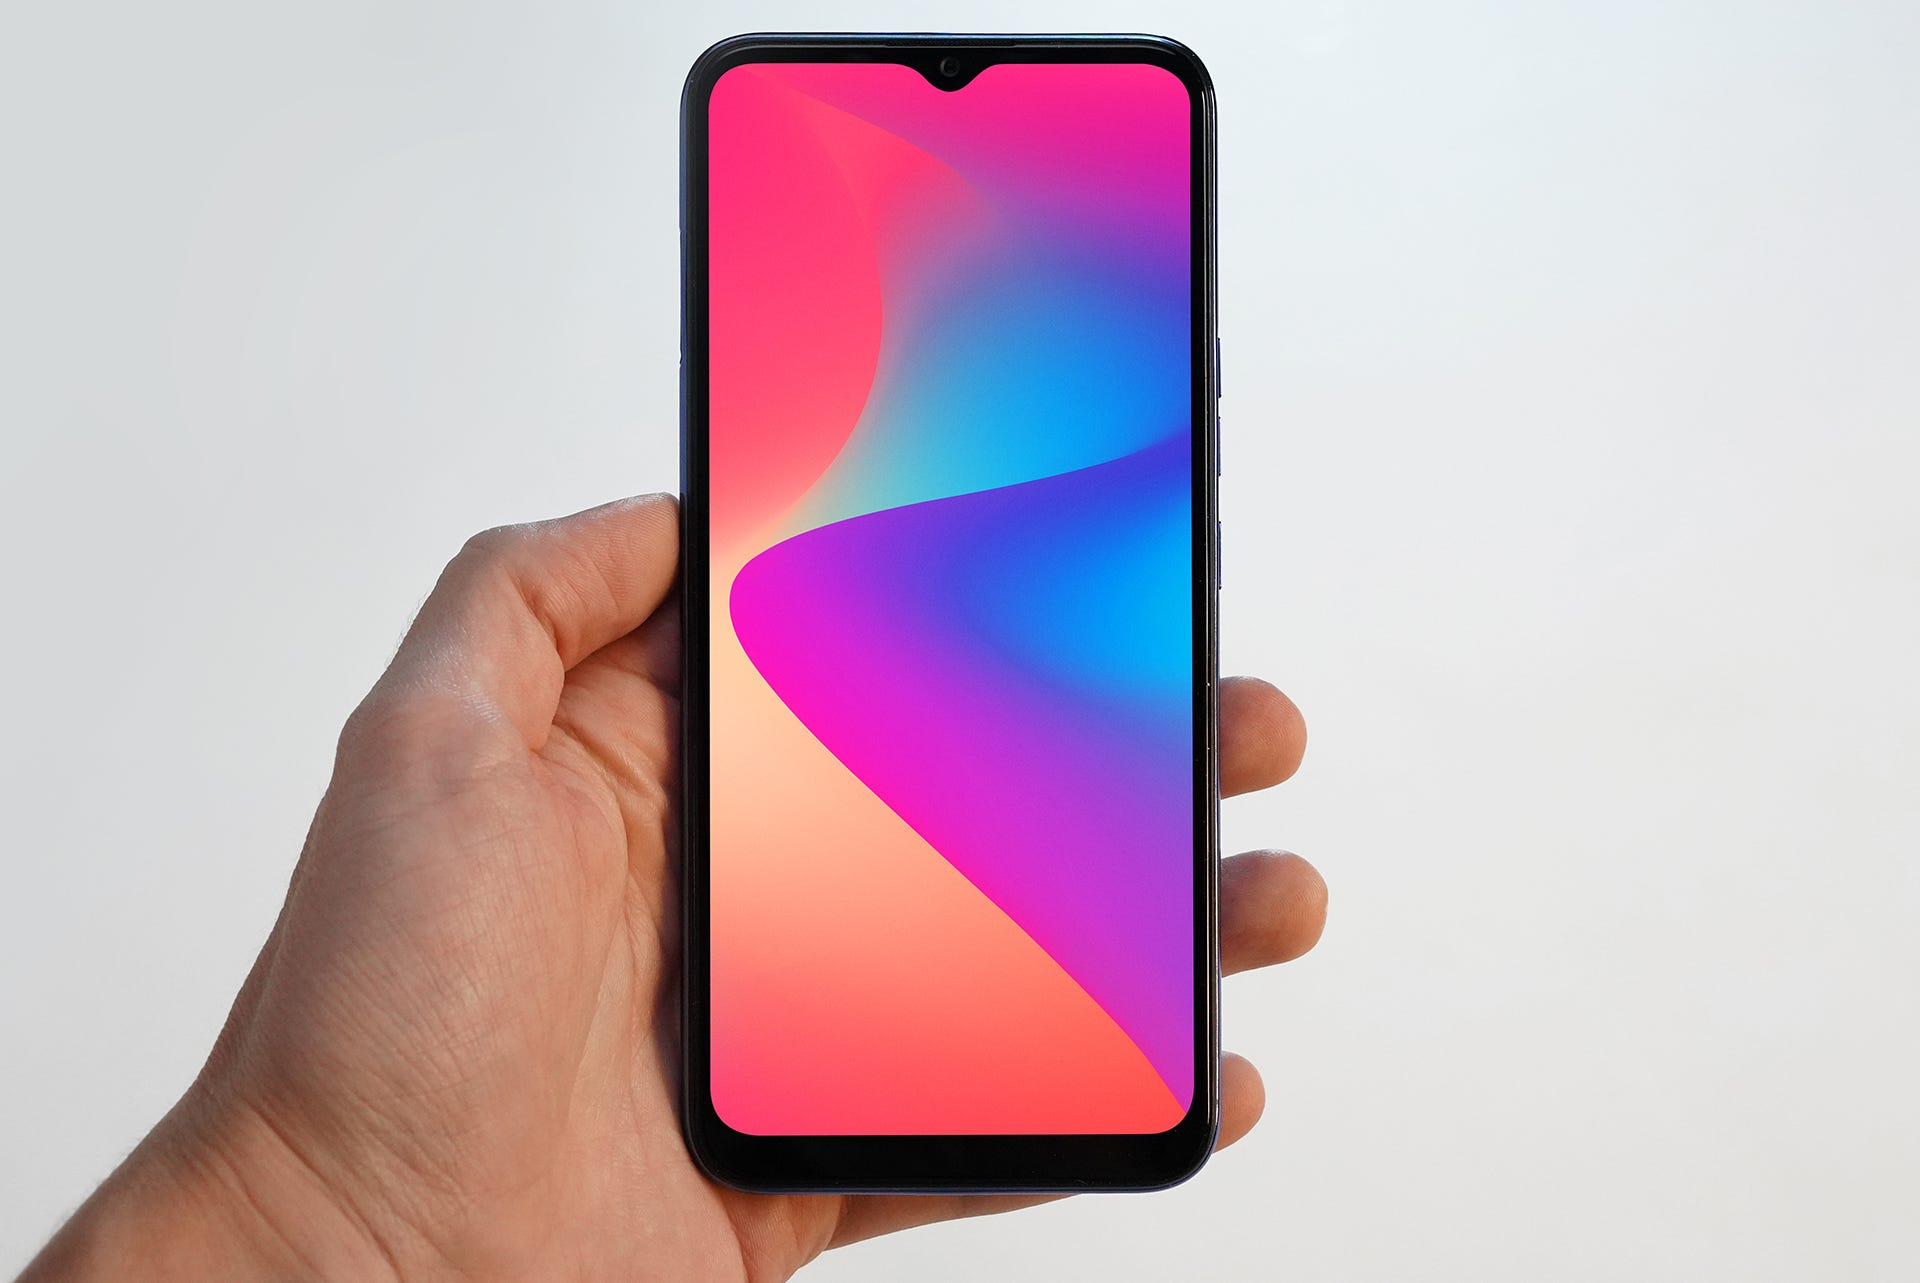 Blu G90 phone, in hand with colorful screen